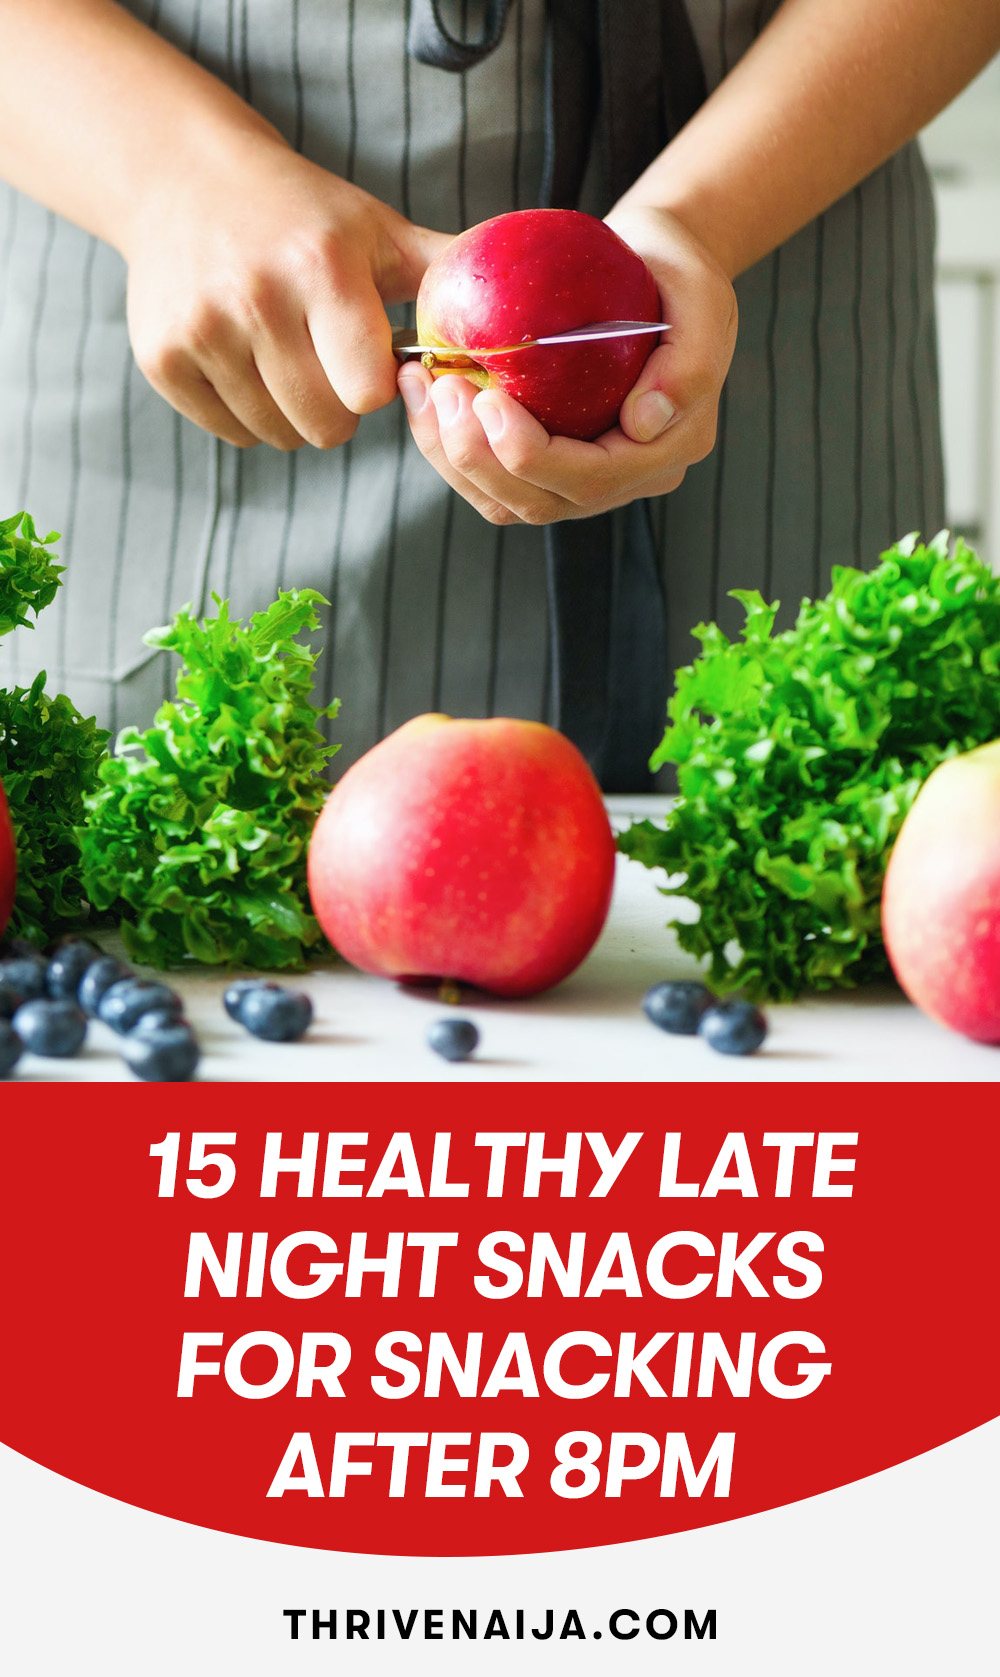 15 Healthy Late Night Snacks For Snacking After 8PM